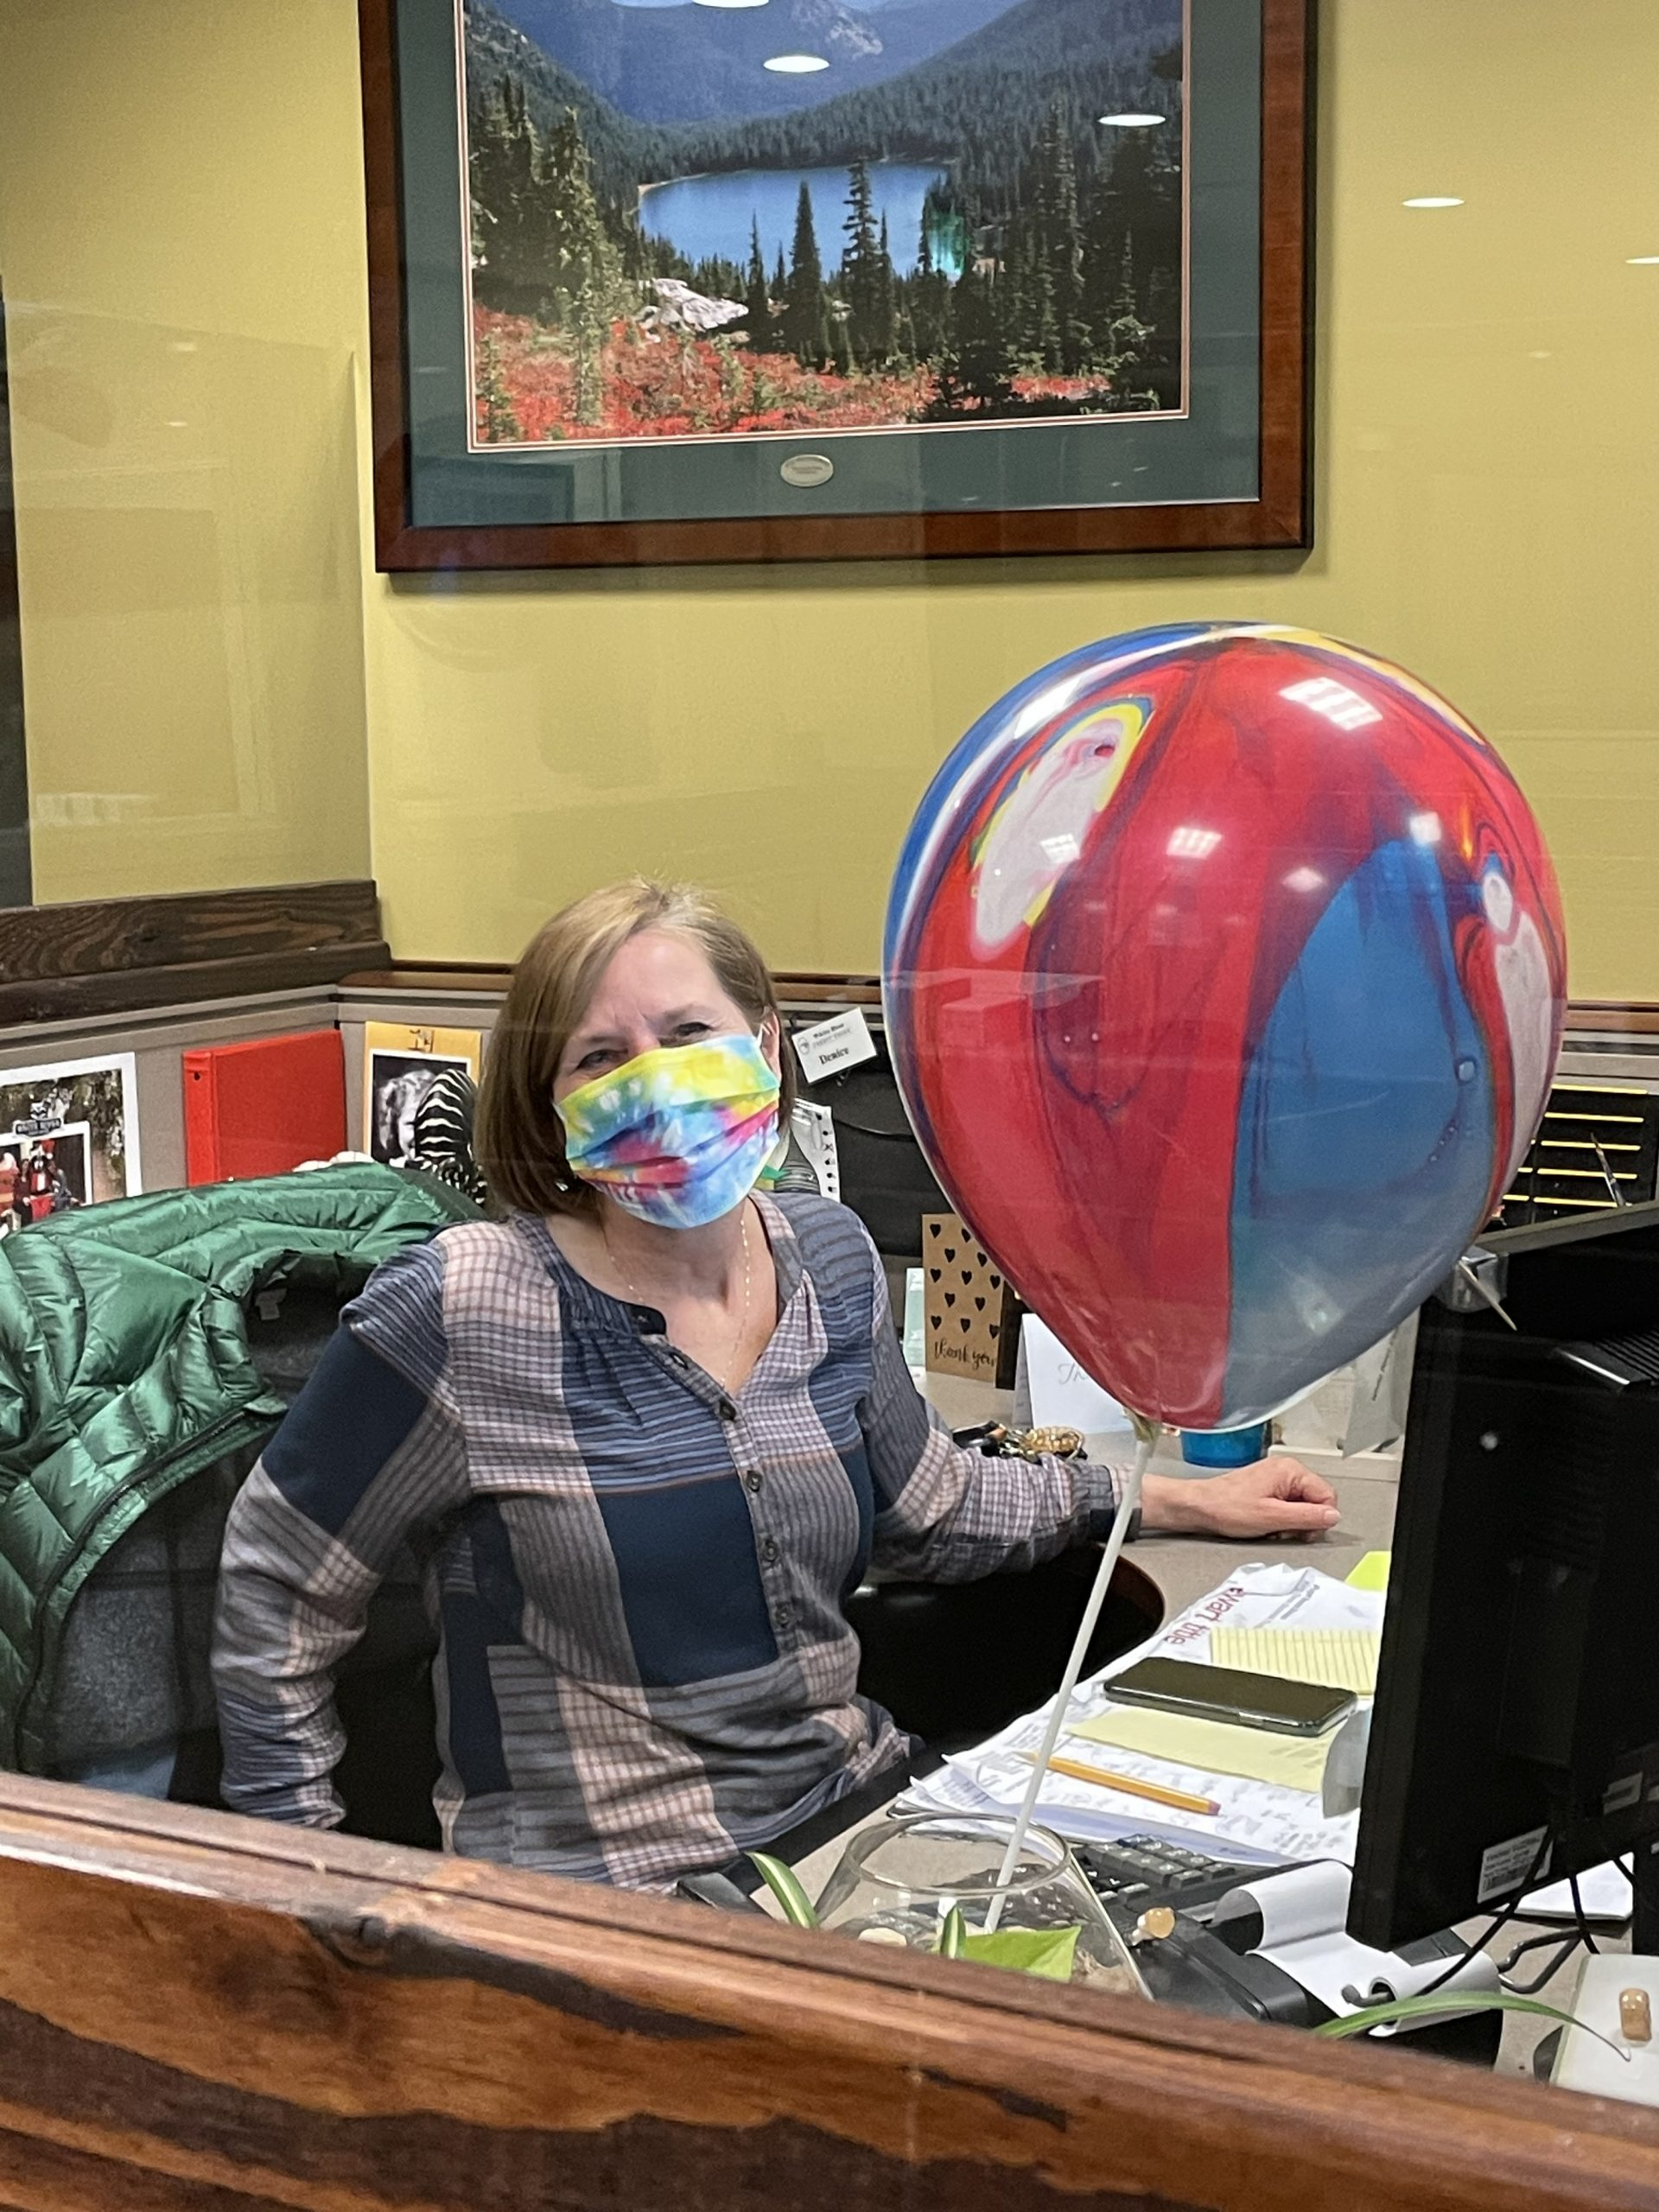 Credit union employee at desk with balloon and mask, on national have fun at work day